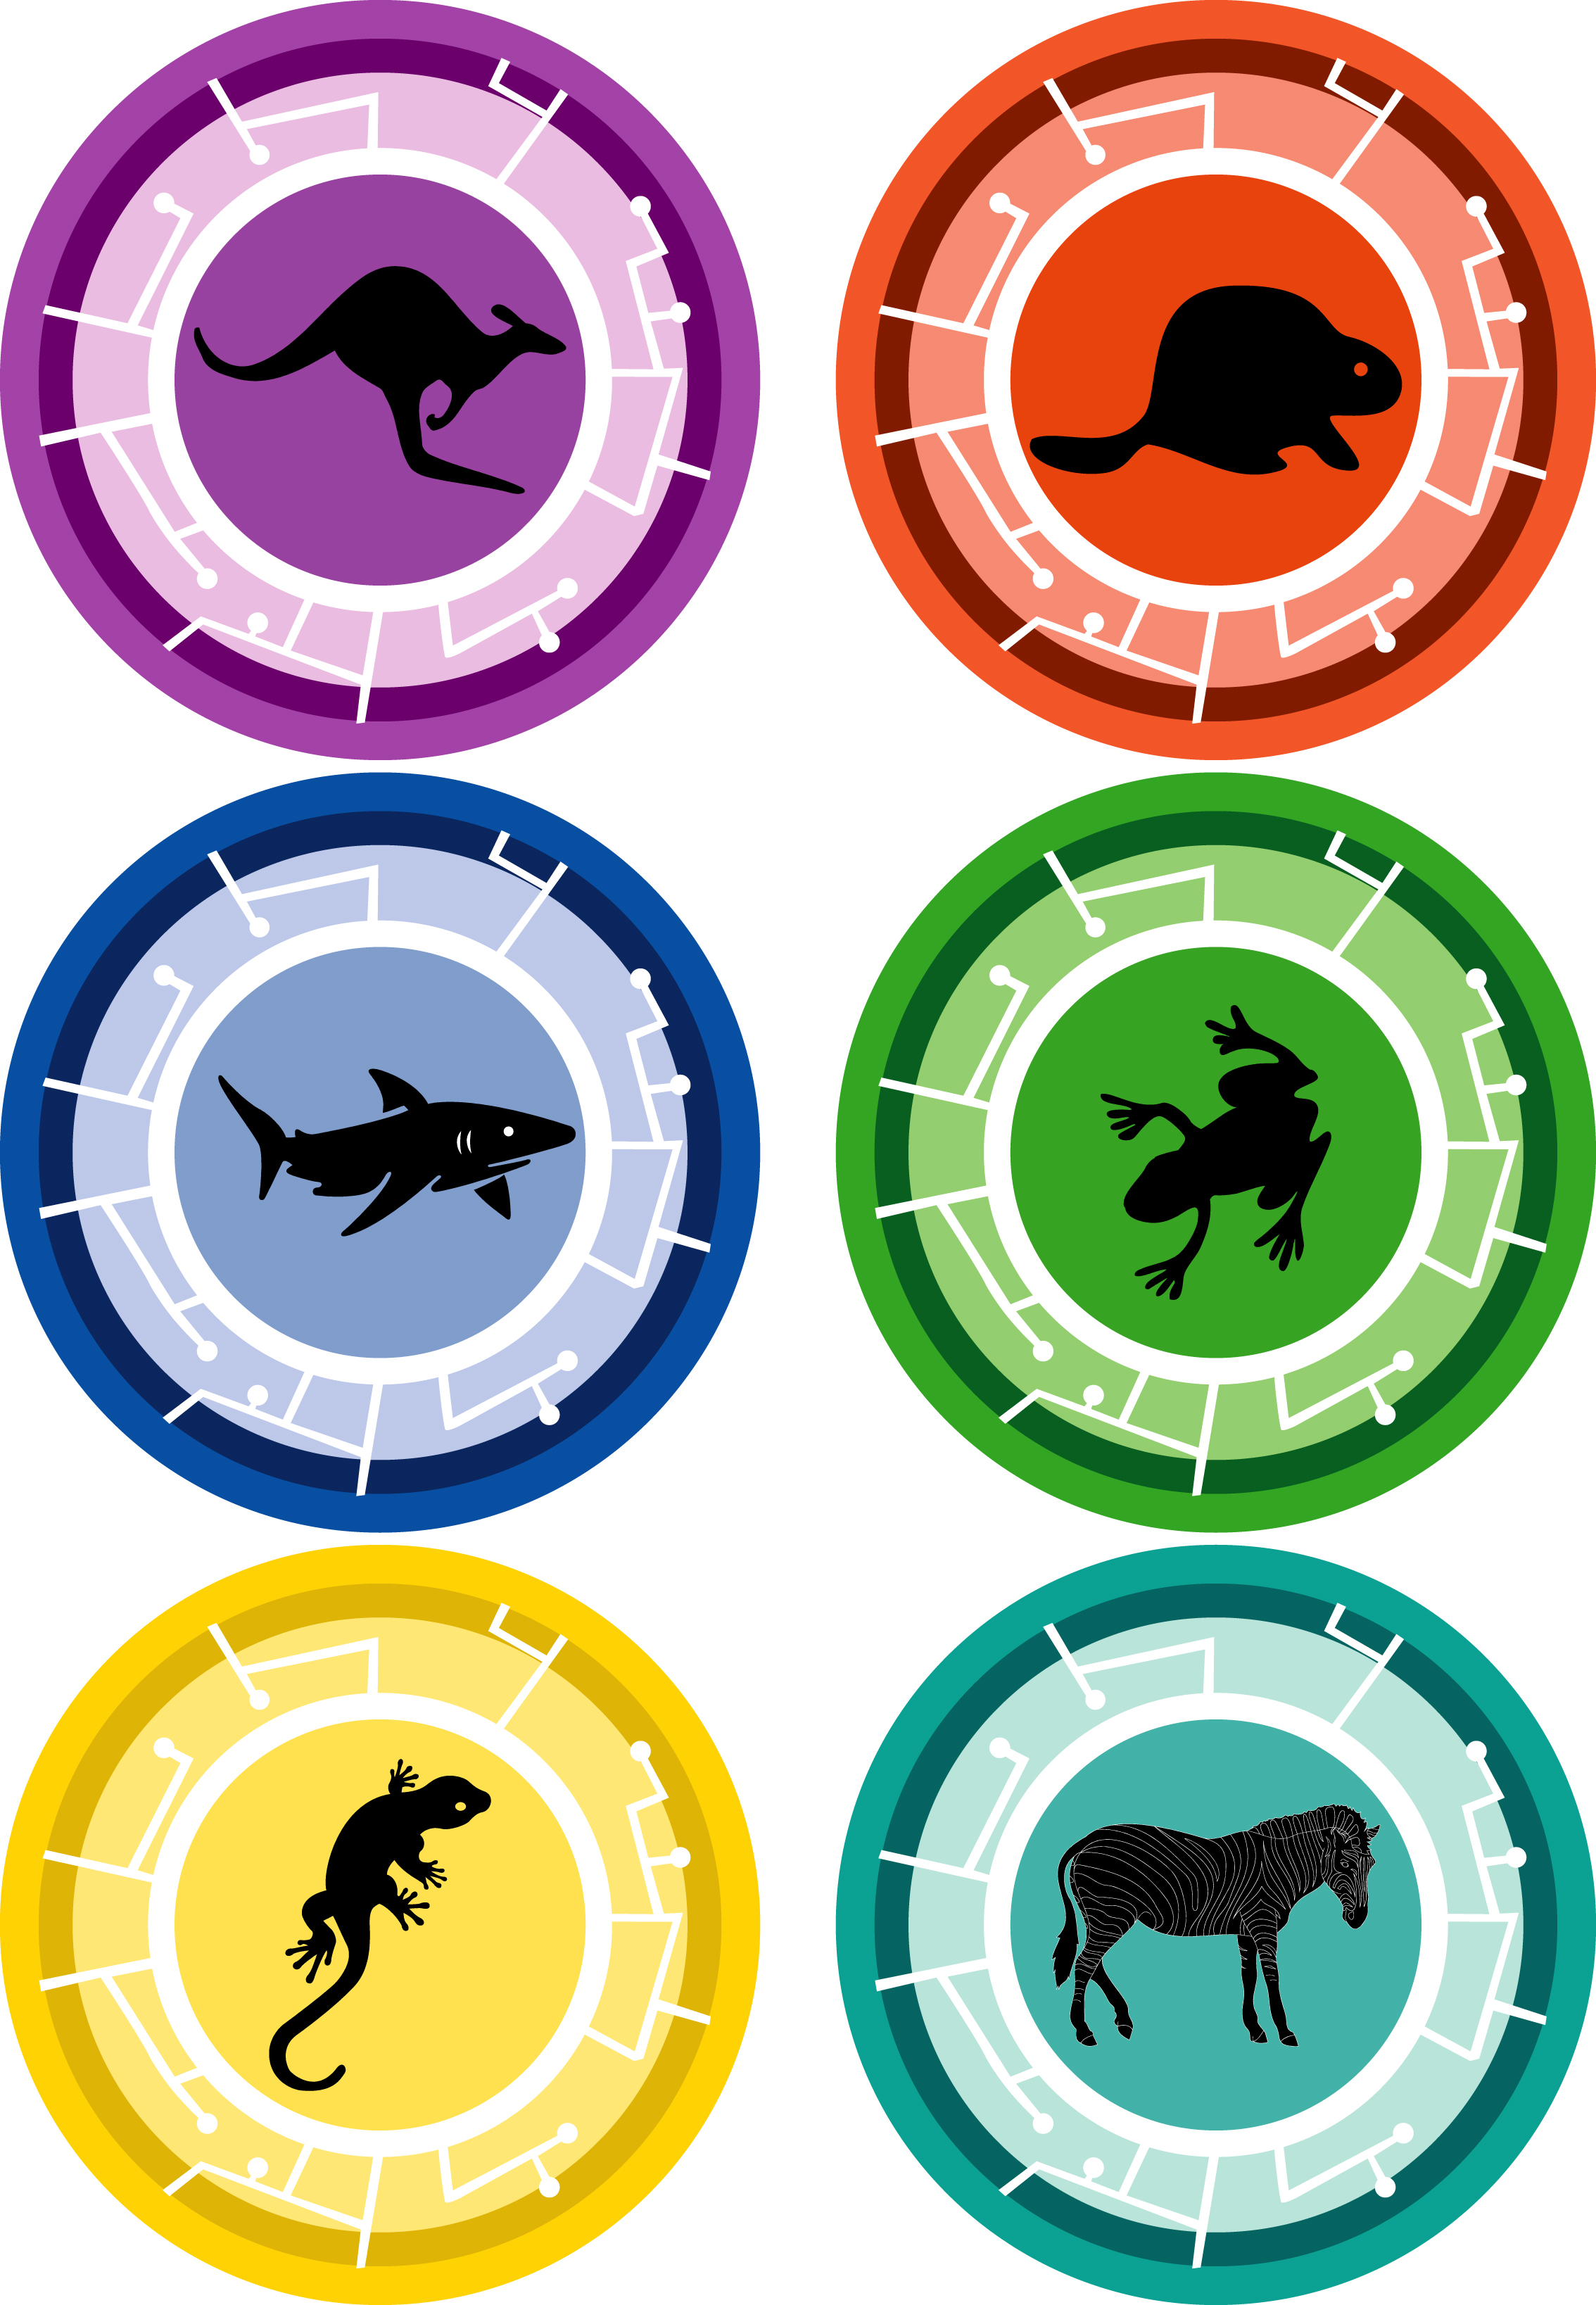 image regarding Wild Kratts Creature Power Discs Printable named Wild Kratts Creature Electricity Disks